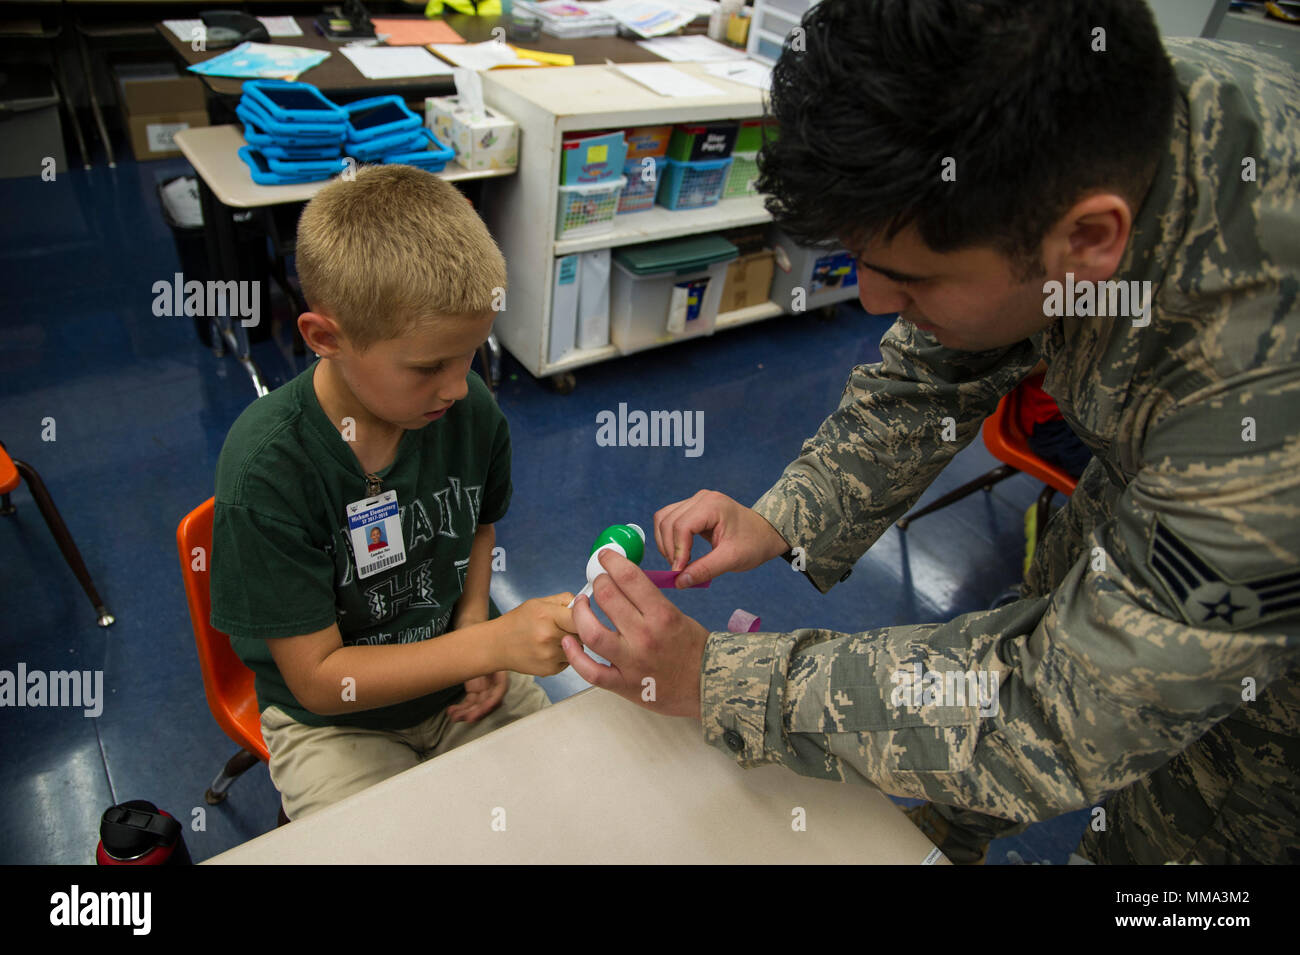 Senior Airman Eddy Santibanez, 647th Logistics Readiness Squadron combat mobility team member, helps second grade students make maracas at Hickam Elementary School, Joint Base Pearl Harbor-Hickam, Hawaii, Sept. 27, 2017.  Volunteers organized a variety of events for the students in support of Hispanic Heritage Month.  Hispanic Heritage Month is observed from 15 Sept.-15 Oct. to celebrate the history, culture and contributions of American citizens whose ancestors came from Spain, Mexico, the Caribbean and Central and South America. (U.S. Air Force photo by Tech. Sgt. Heather Redman) - Stock Image